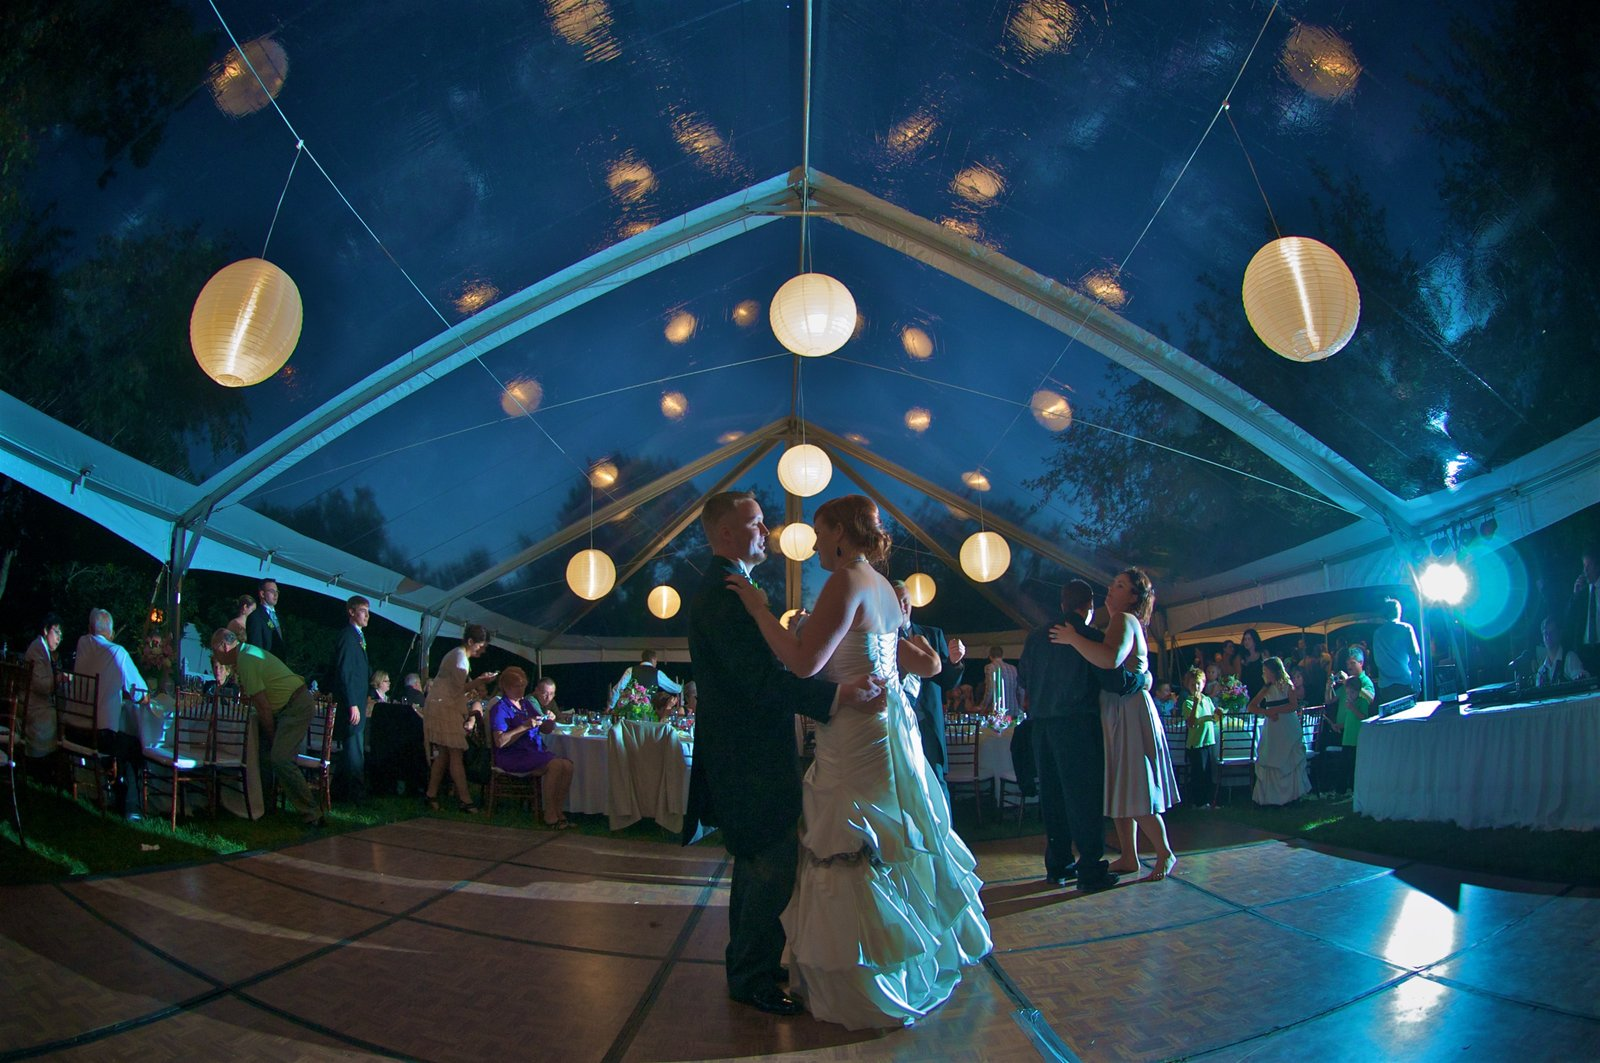 Floating Fairy Lights in a clear-roofed tent